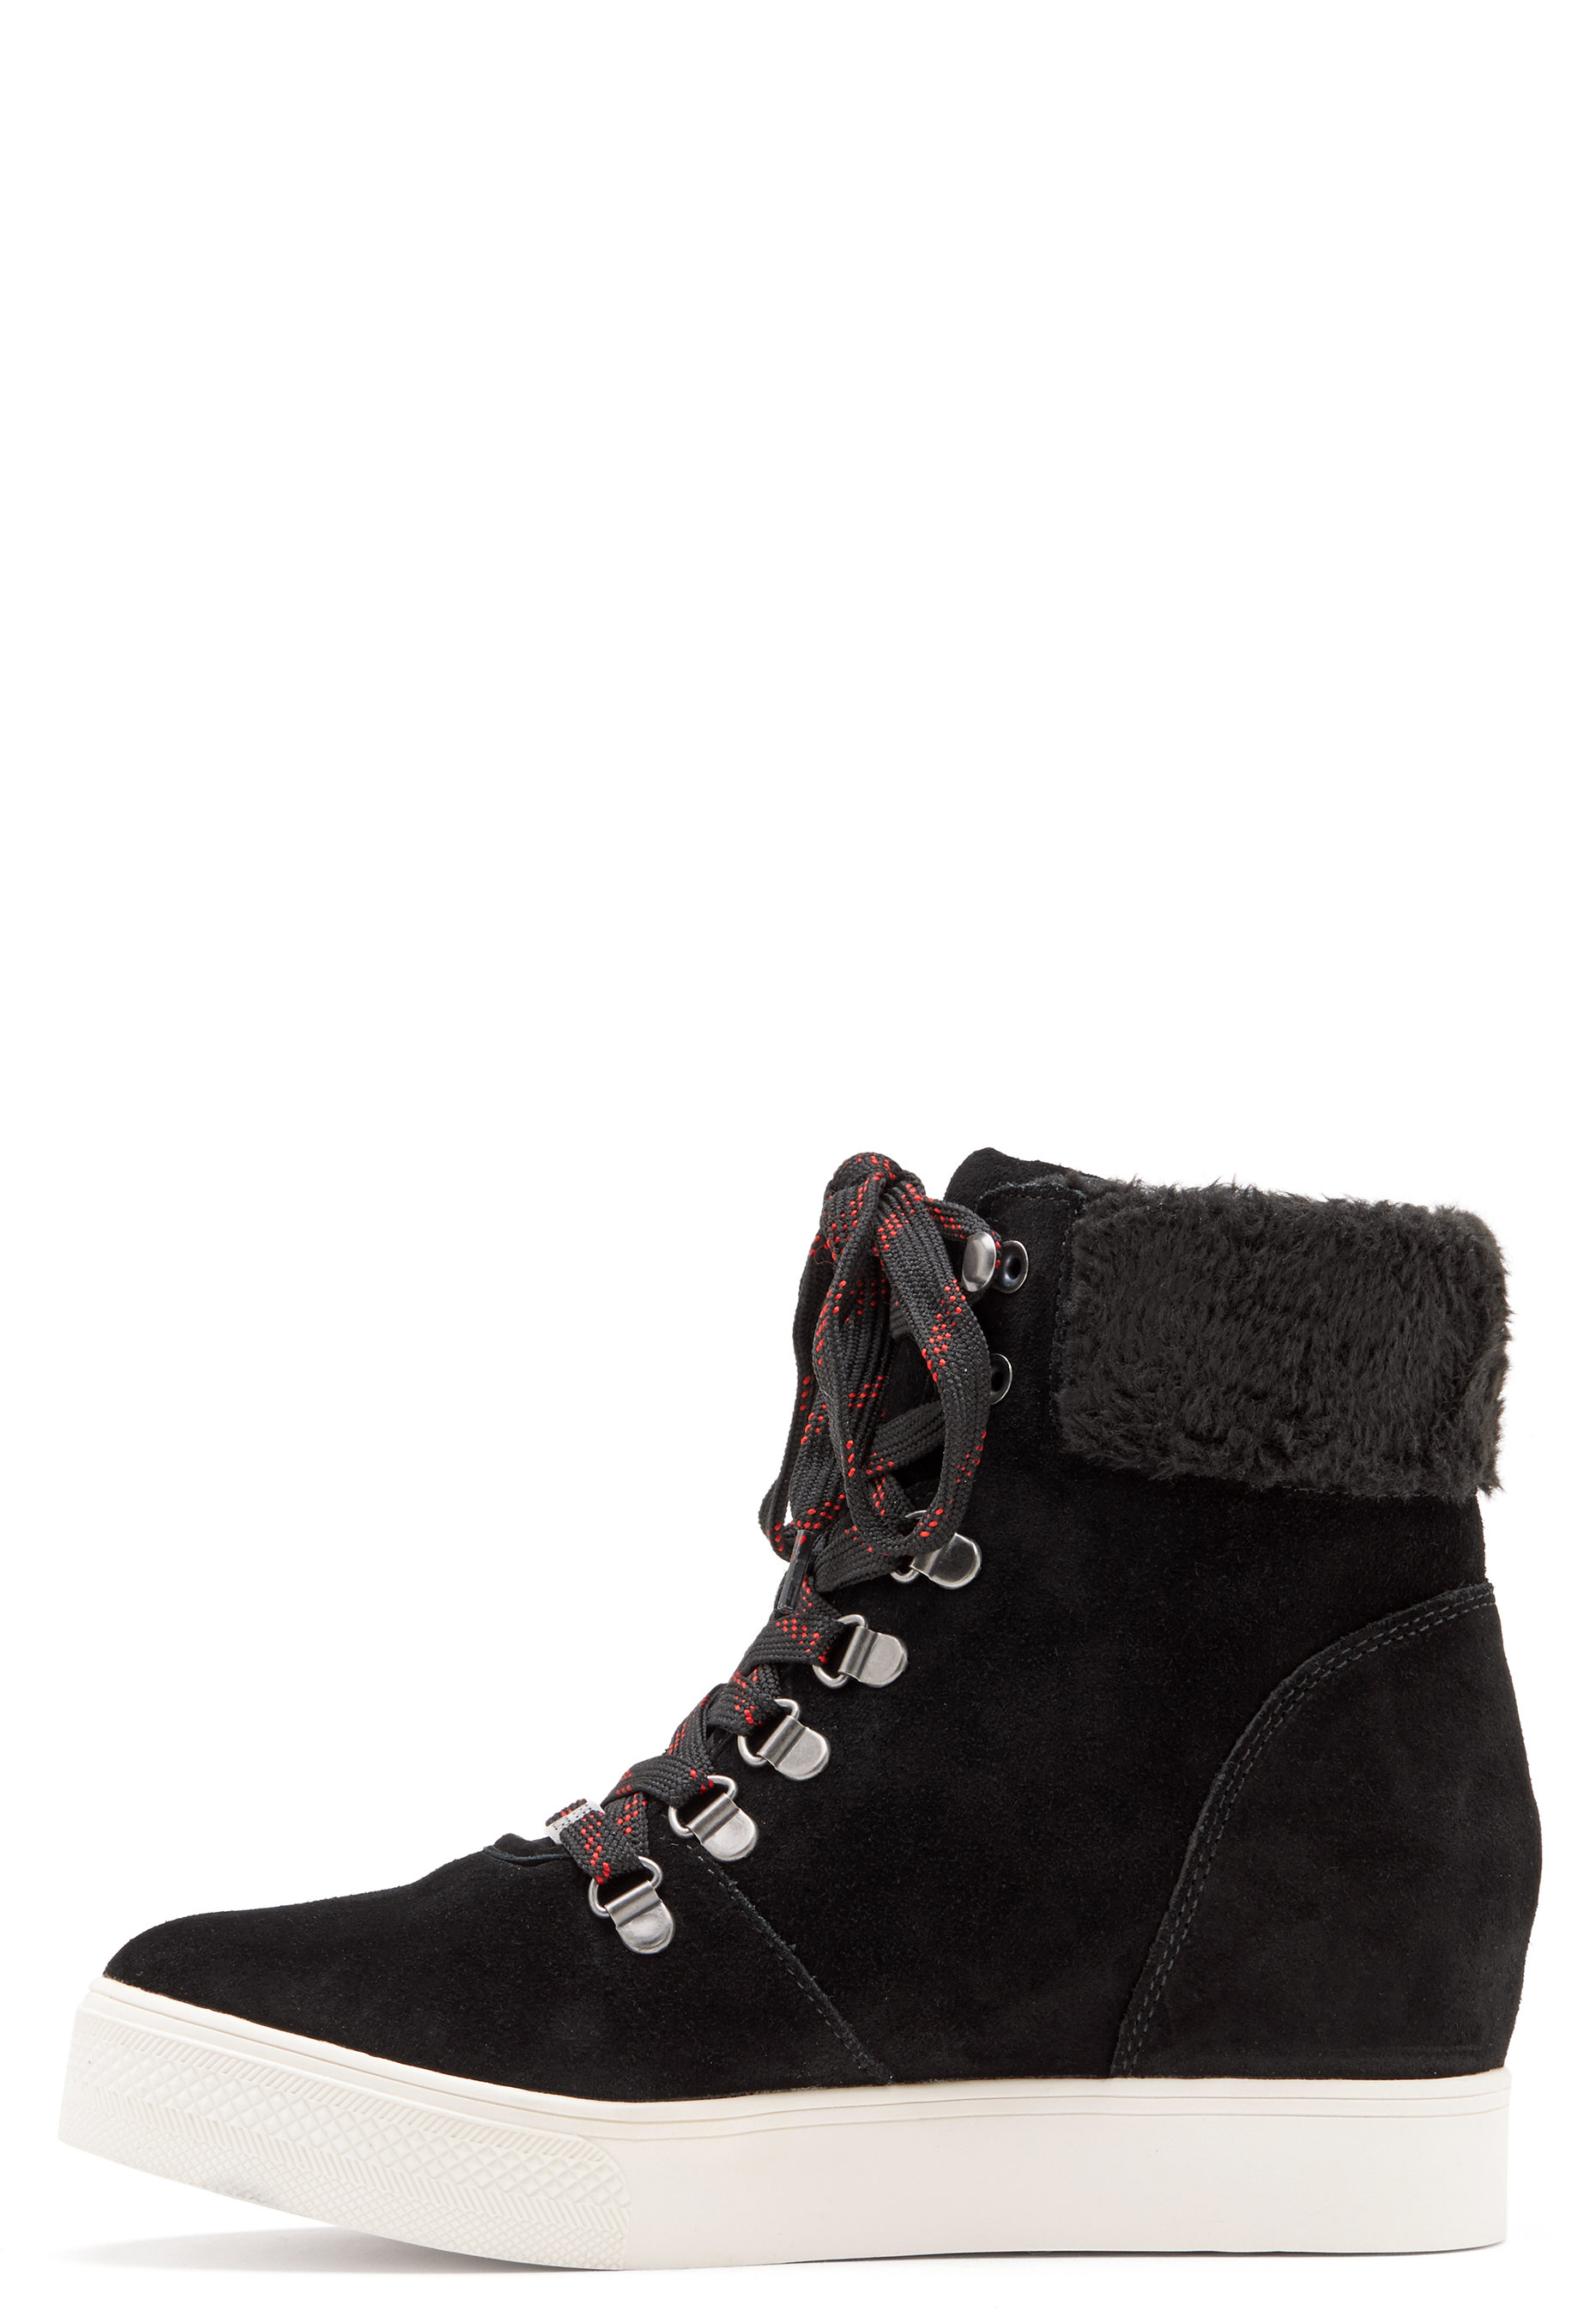 90051d459691 Steve Madden Windy Suede Boots Black - Bubbleroom